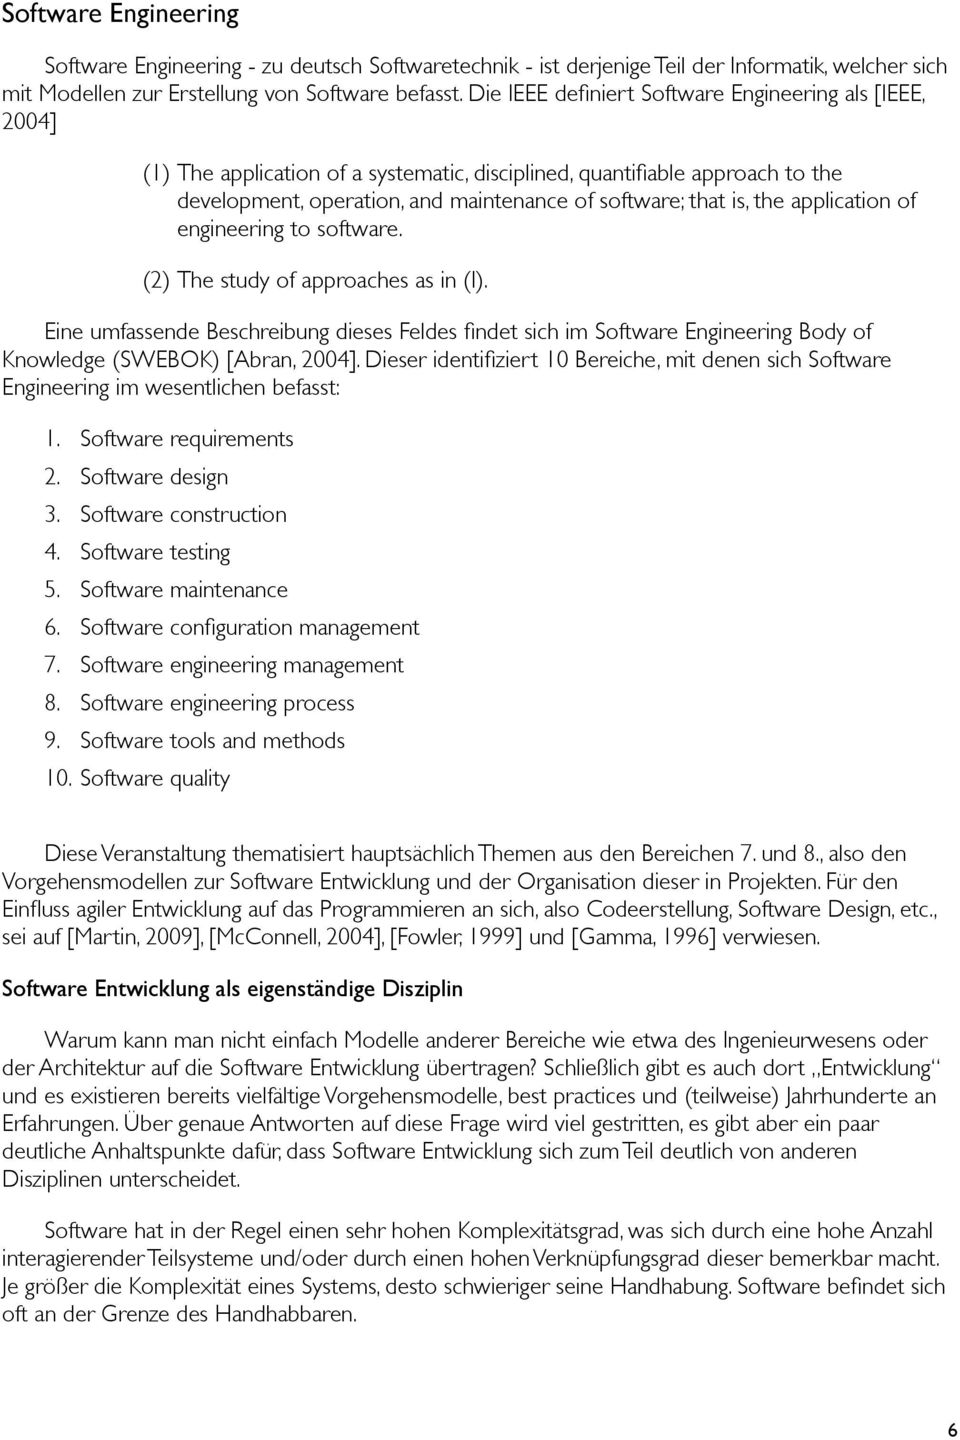 the application of engineering to software. (2) The study of approaches as in (I).